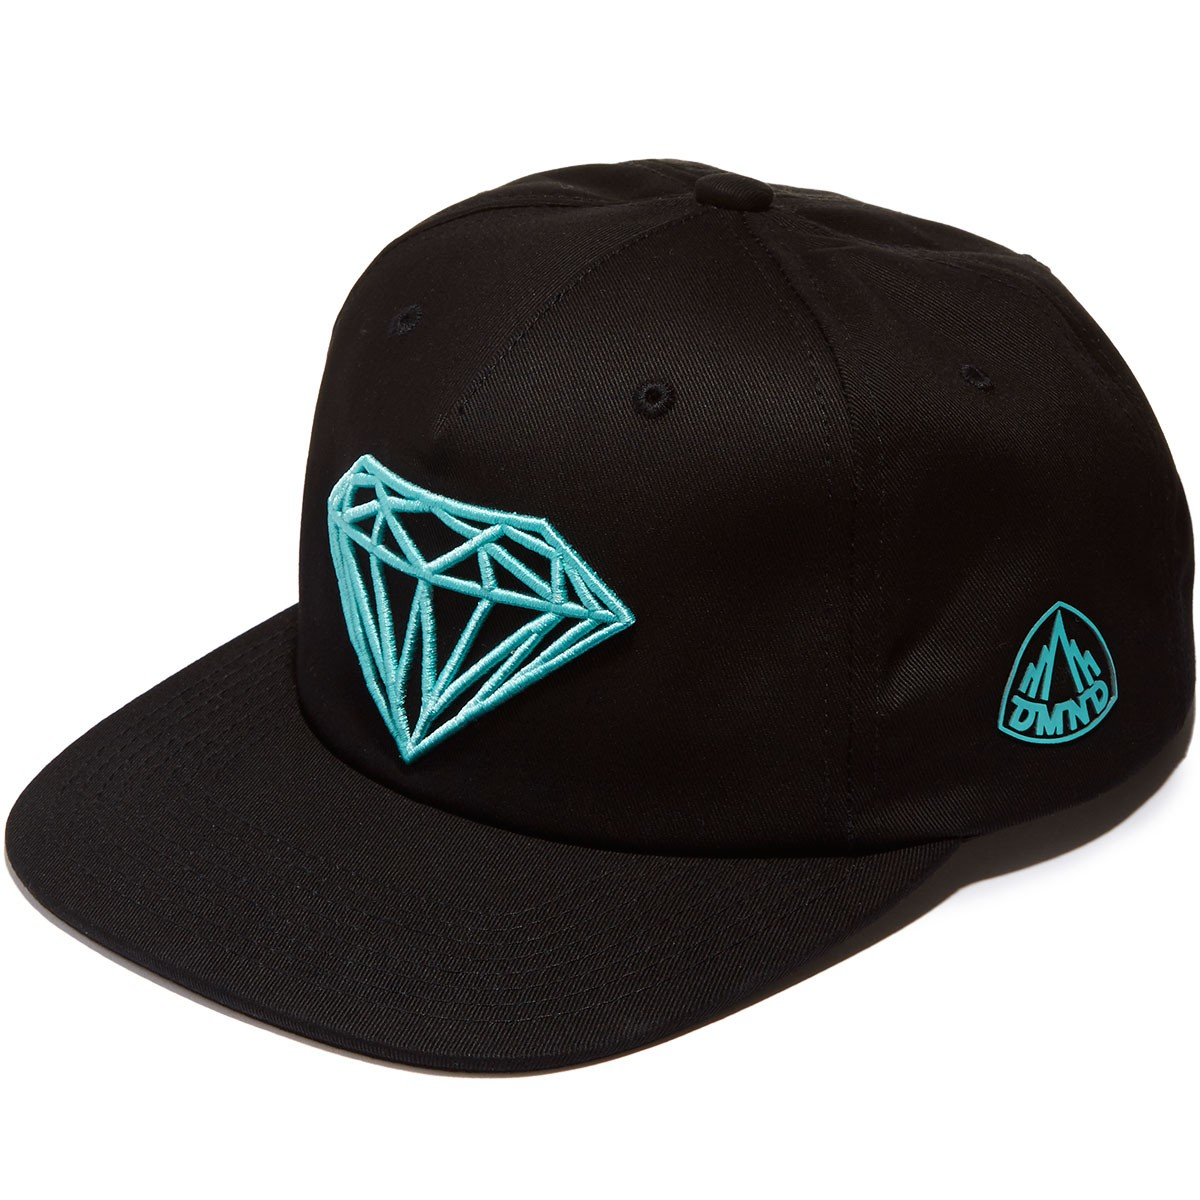 a1f26e12d Diamond Supply Co. Brilliant Snapback Hat